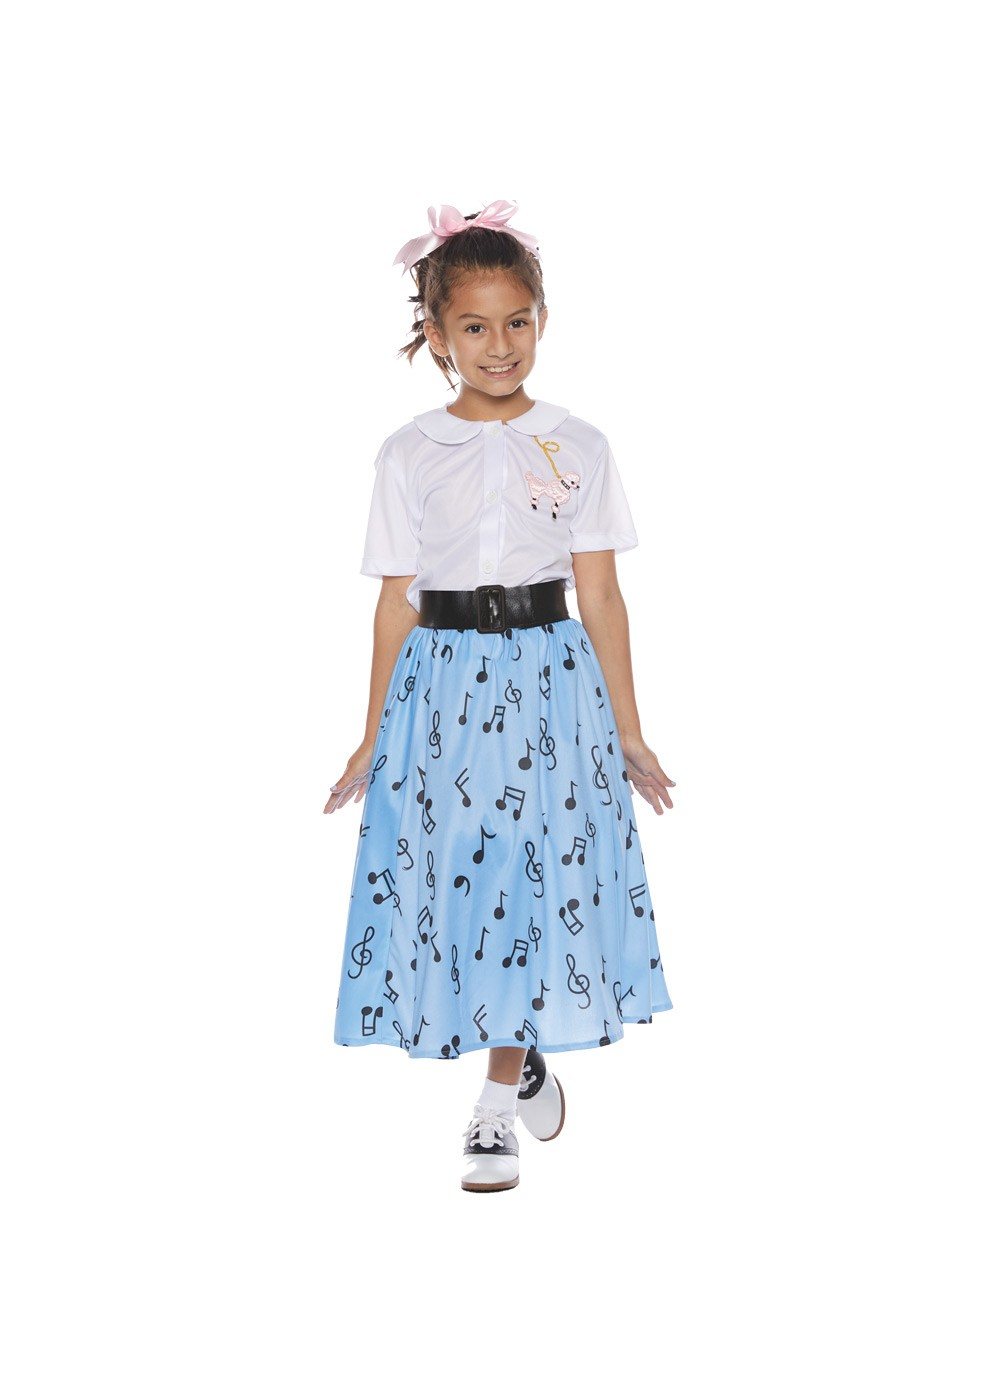 fb3af36f1546 50's Poodle Skirt Girl Costume - 1950s Costumes